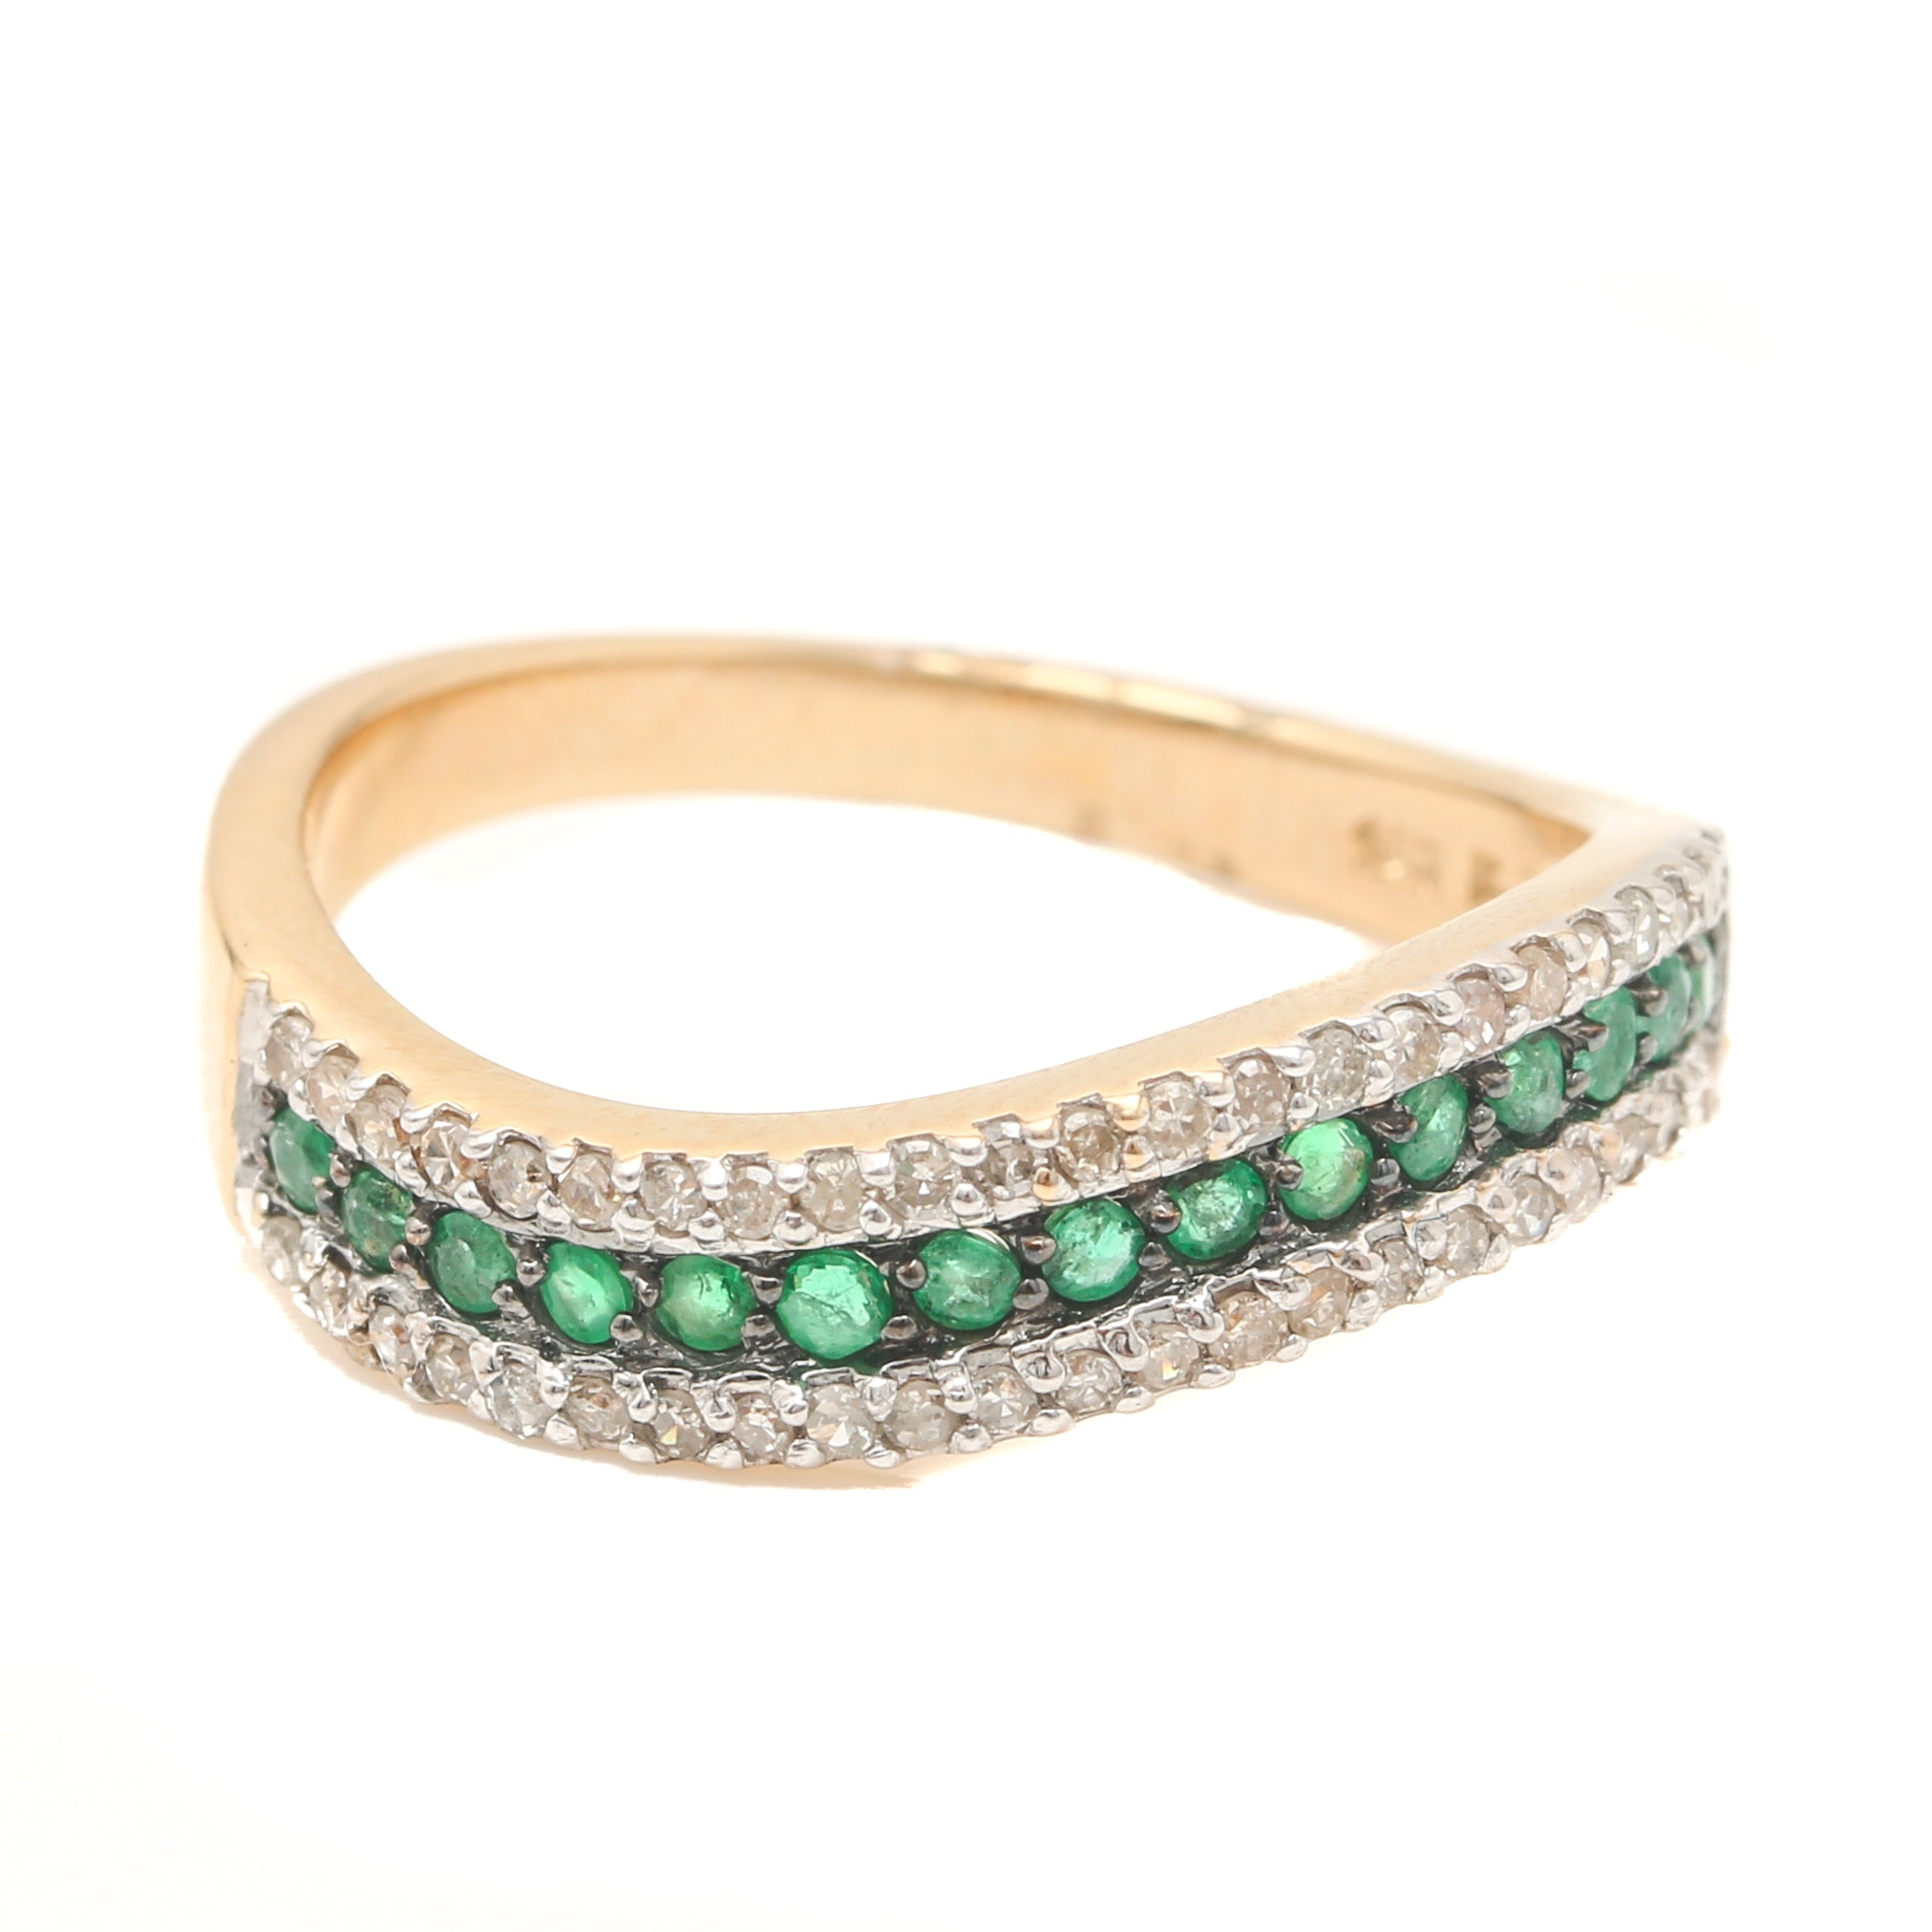 14K Yellow Gold Emerald and Diamond Scalloped Ring